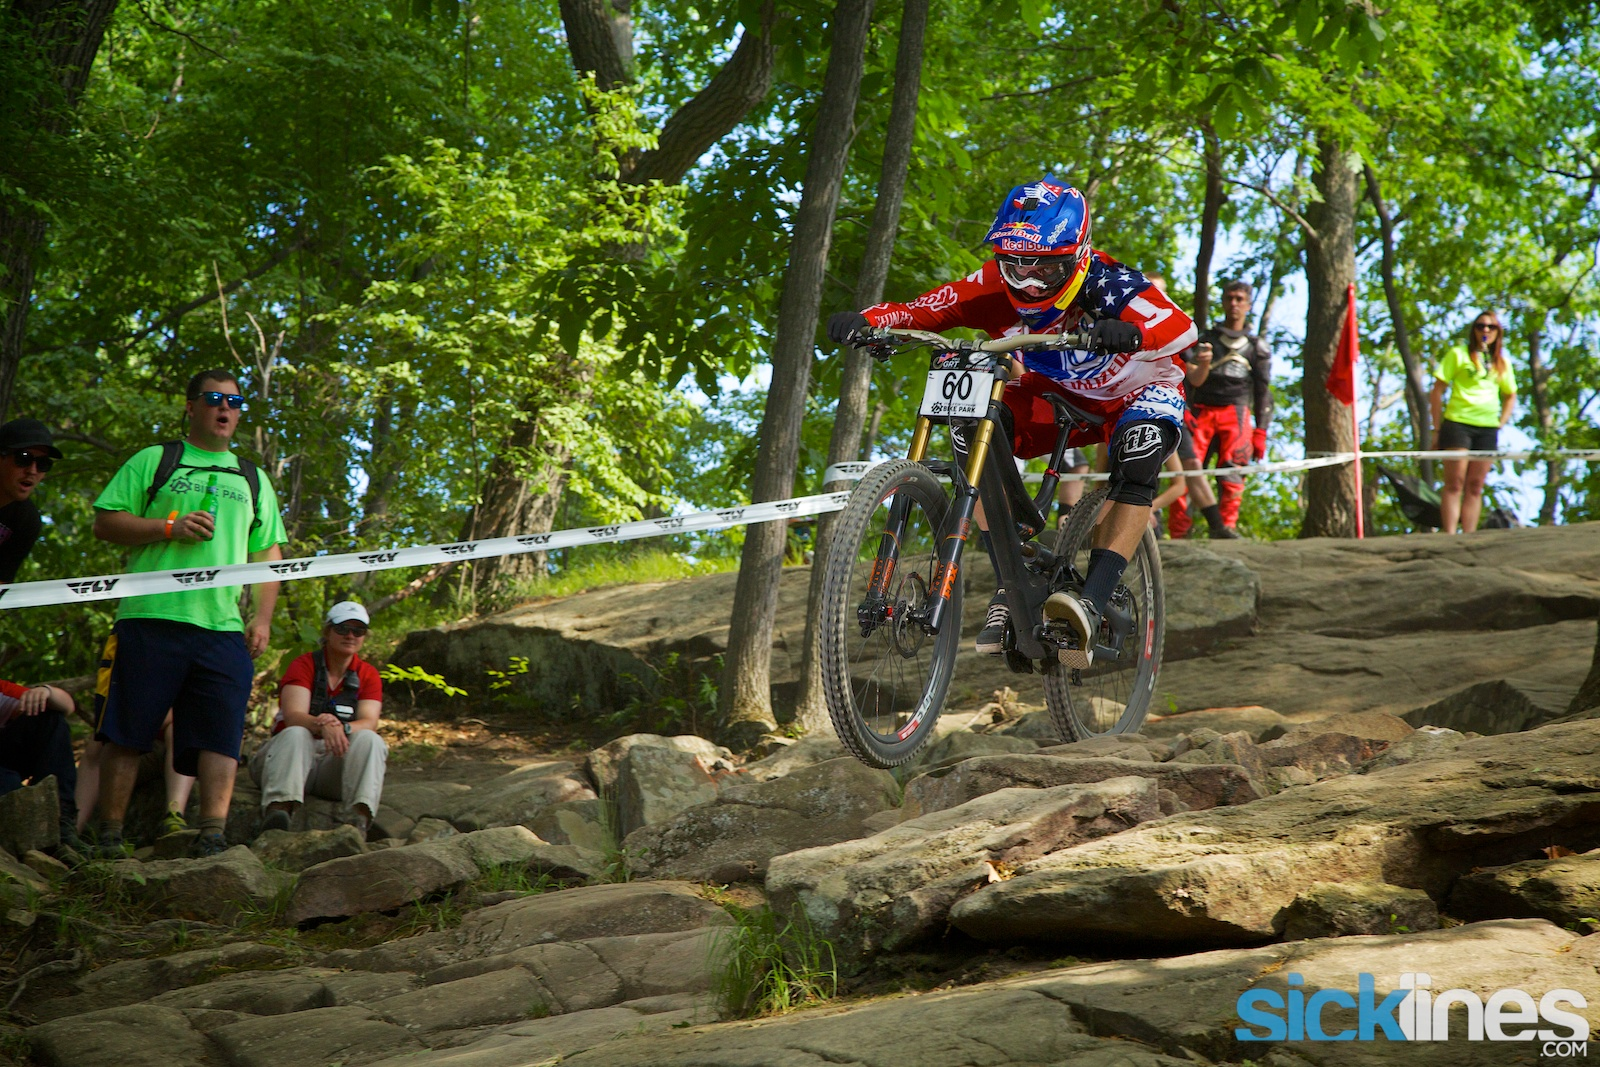 Aaron Gwin - Timeless Video Series, Aaron Gwin – Clay Porter's Timeless Series Episodes 1-4